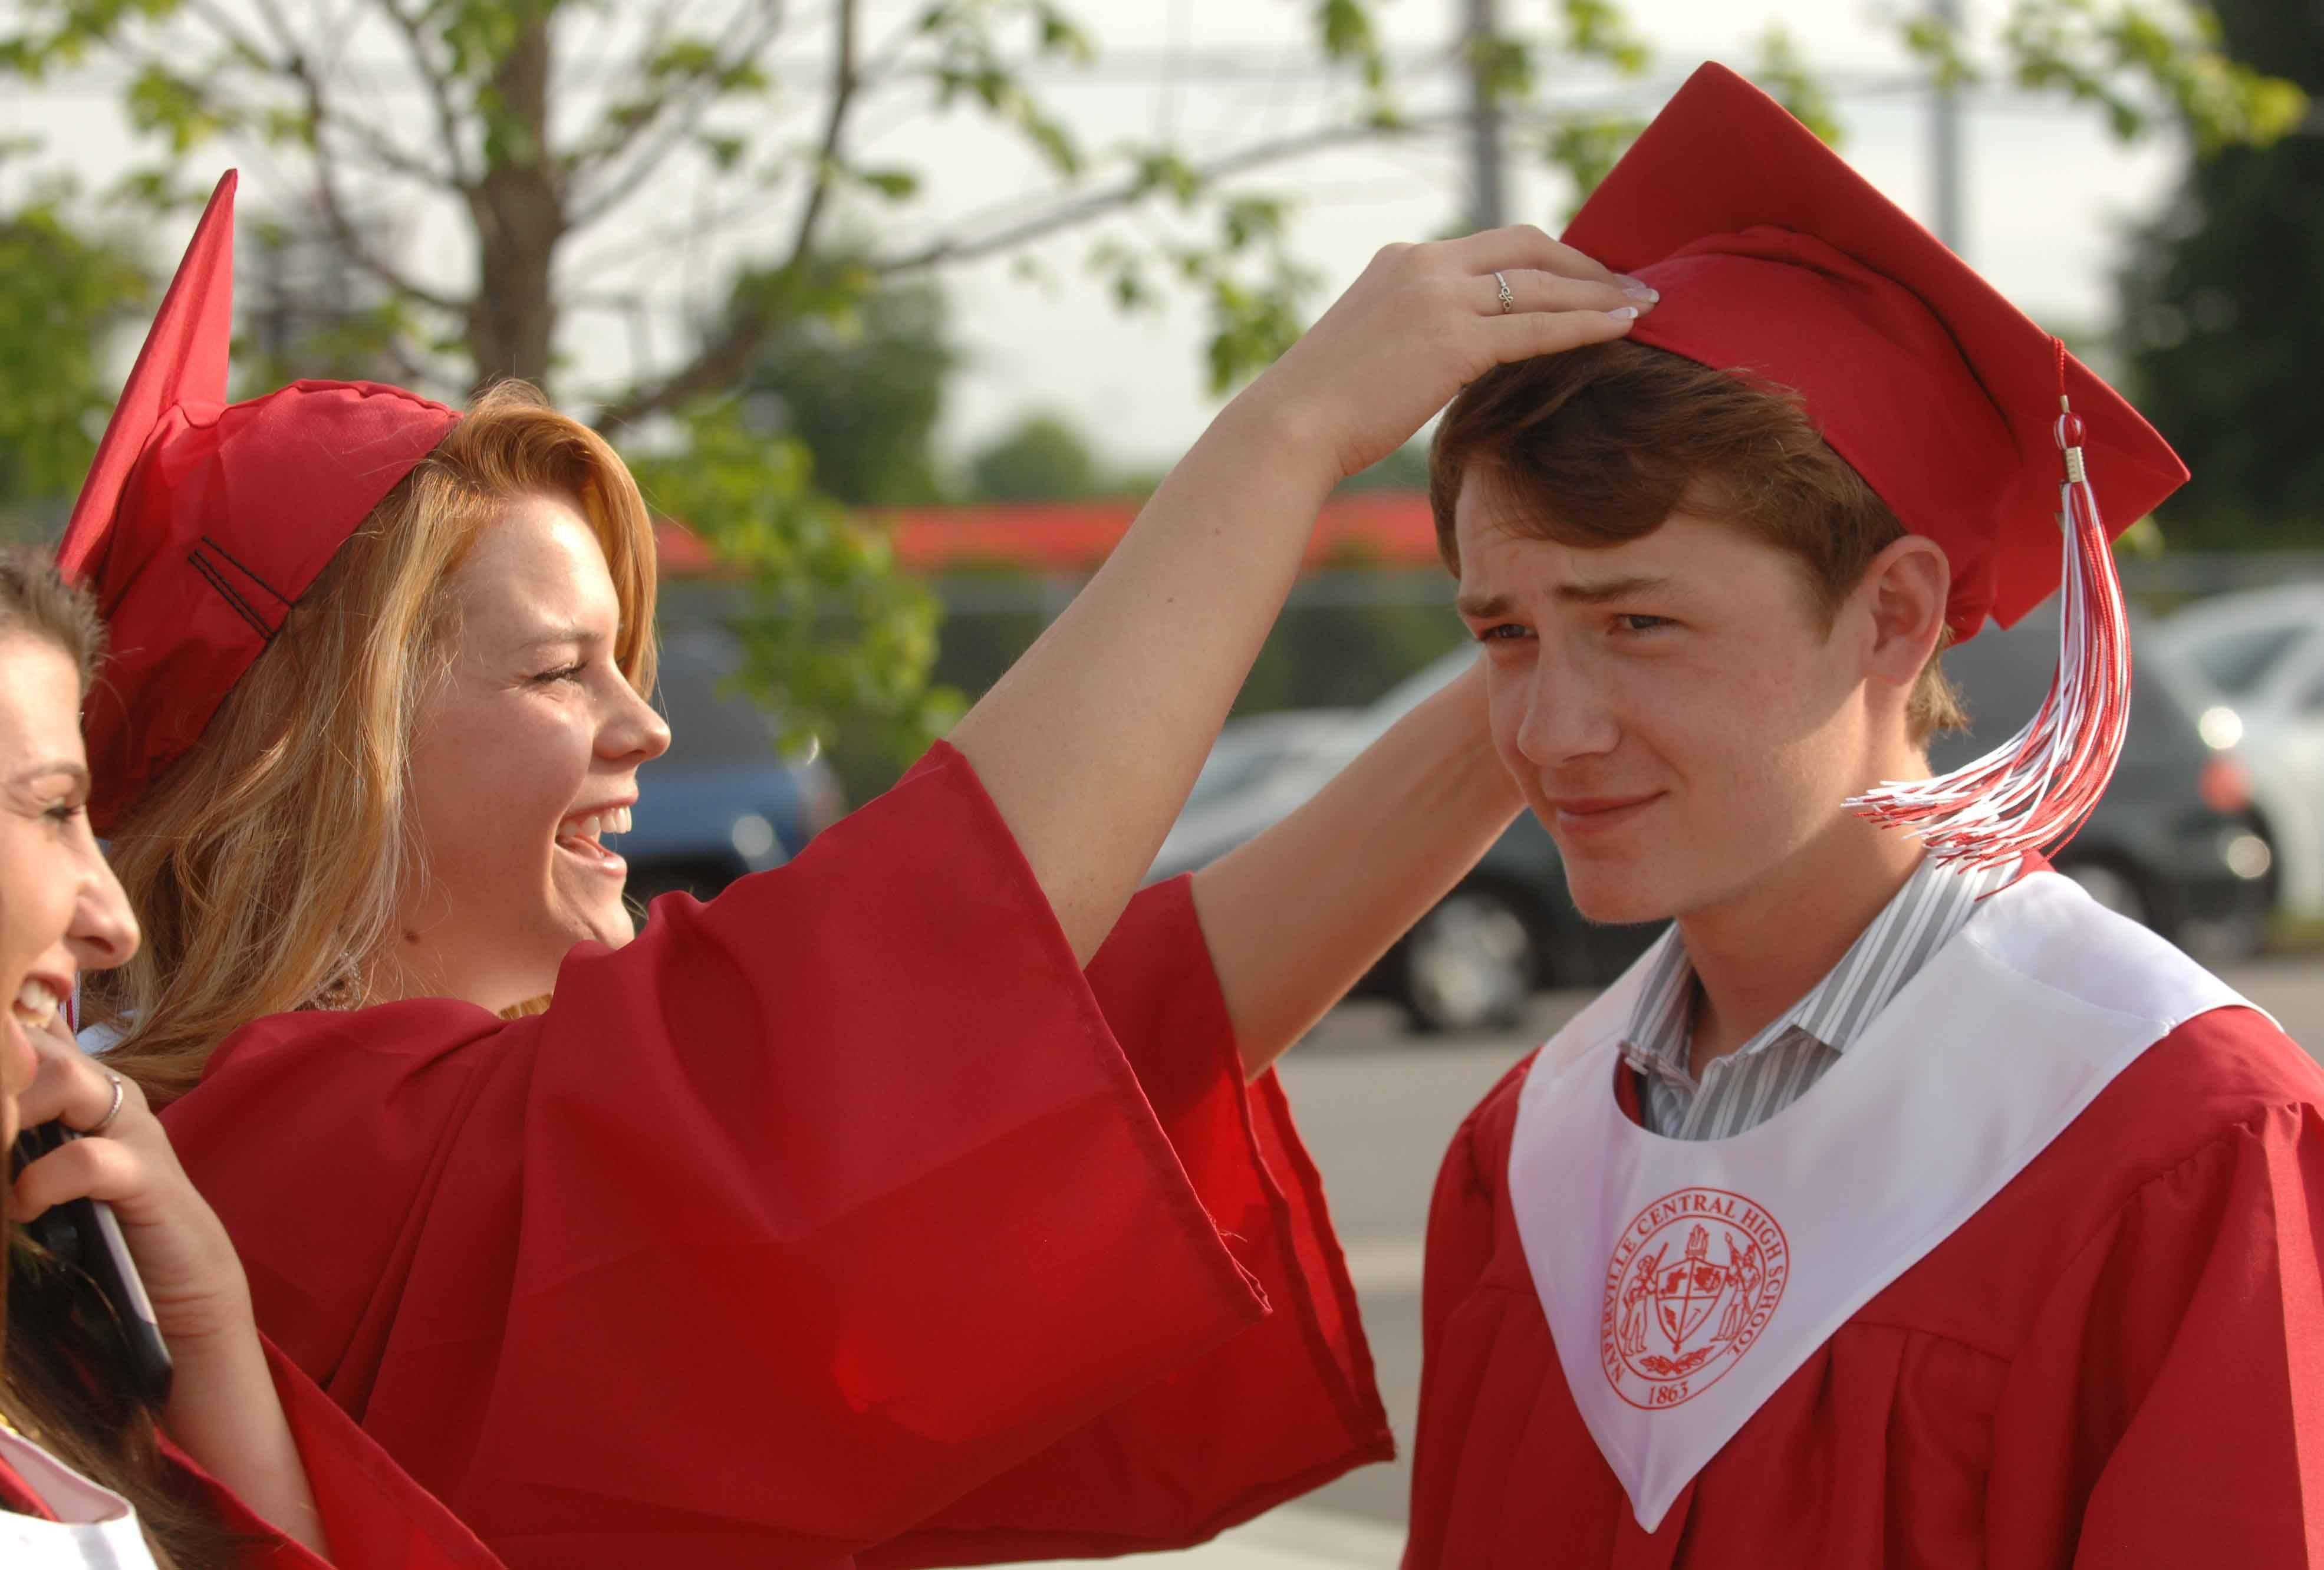 Kelly O'Halloran,left, helps Jack Tobin with his cap just before the Naperville Central High School Commencement Wednesday.